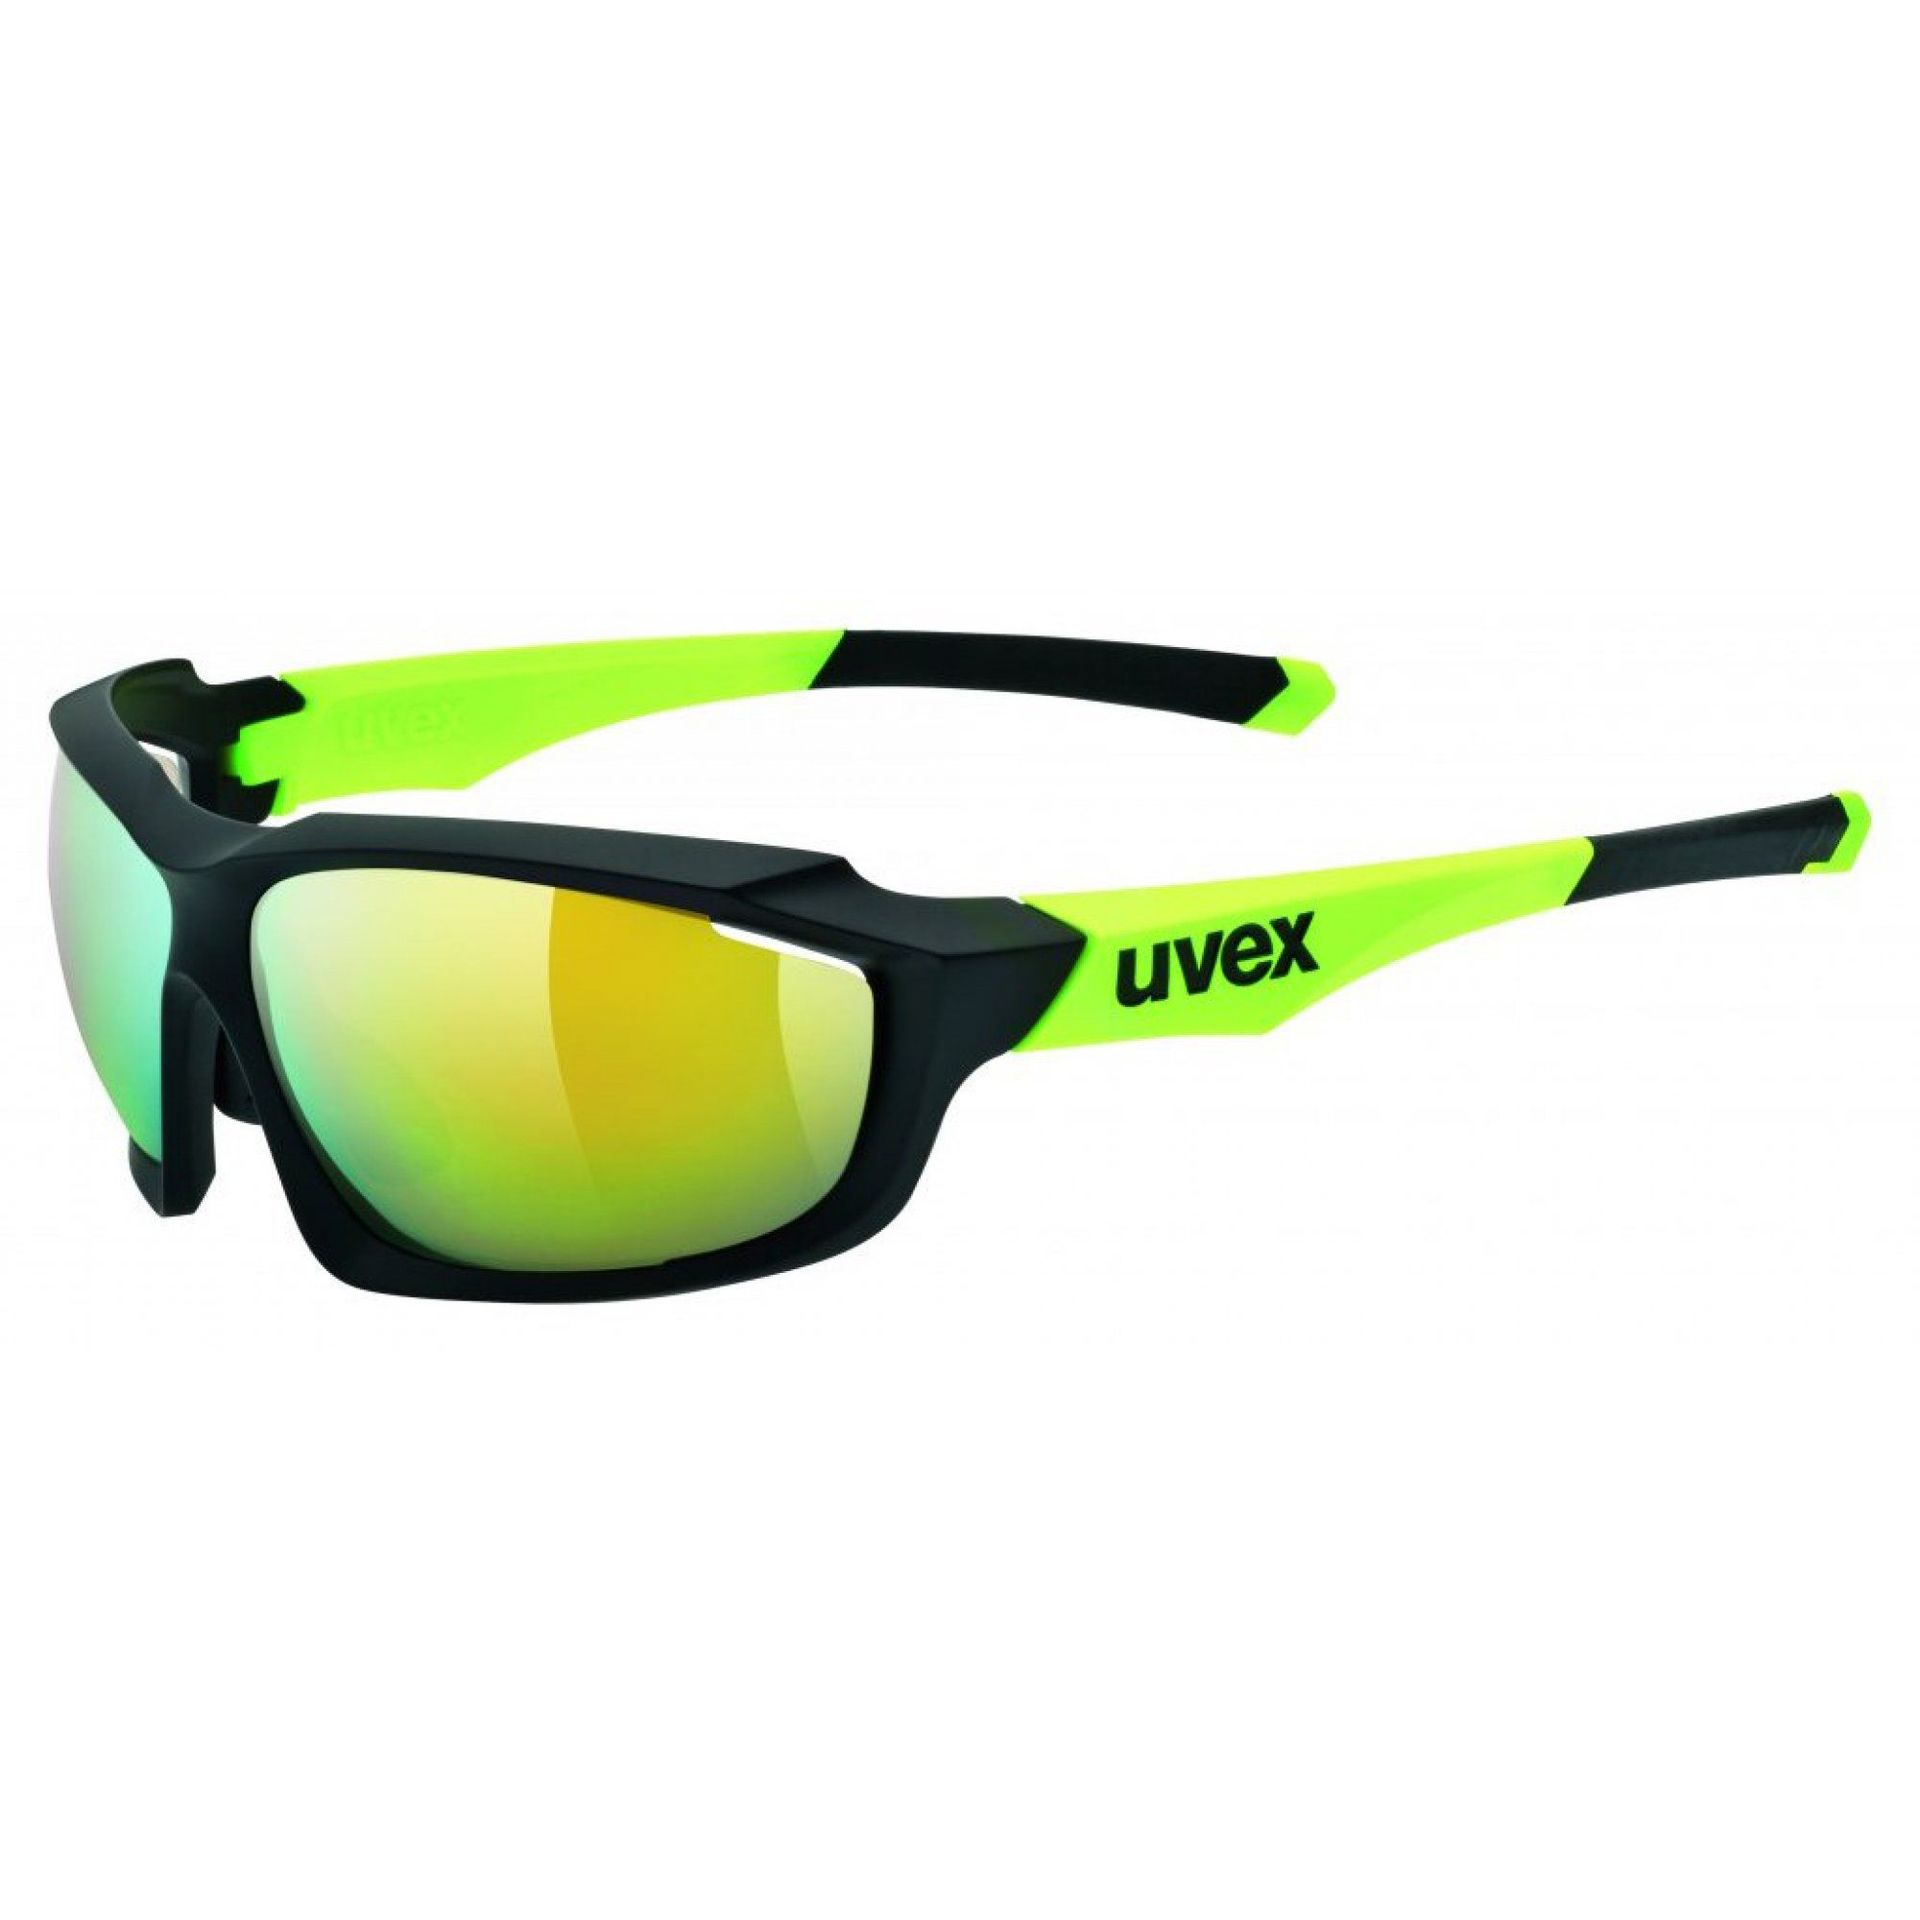 OKULARY UVEX SPORTSTYLE 710 BLACK MAT YELLOW